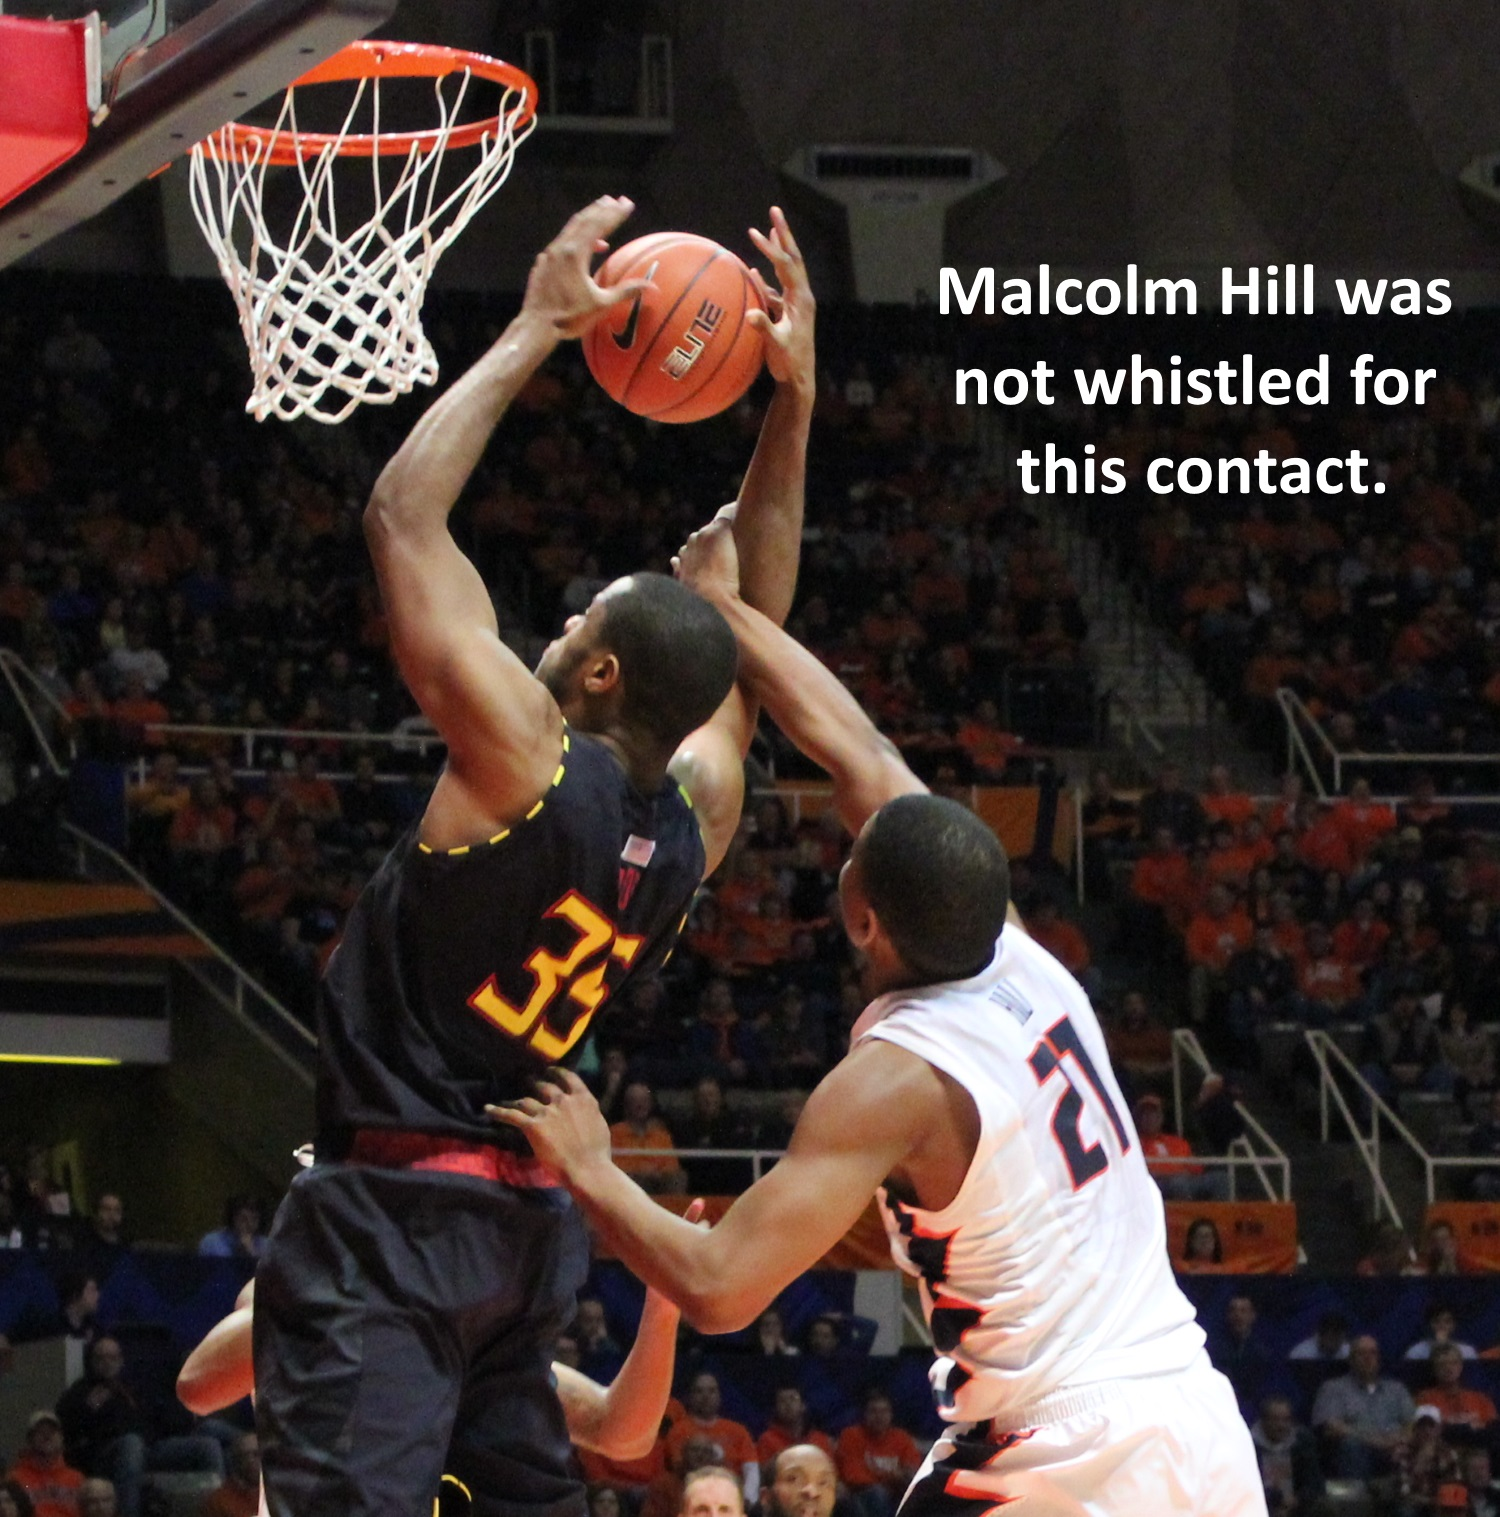 Malcolm Hill was not whistled for this contact